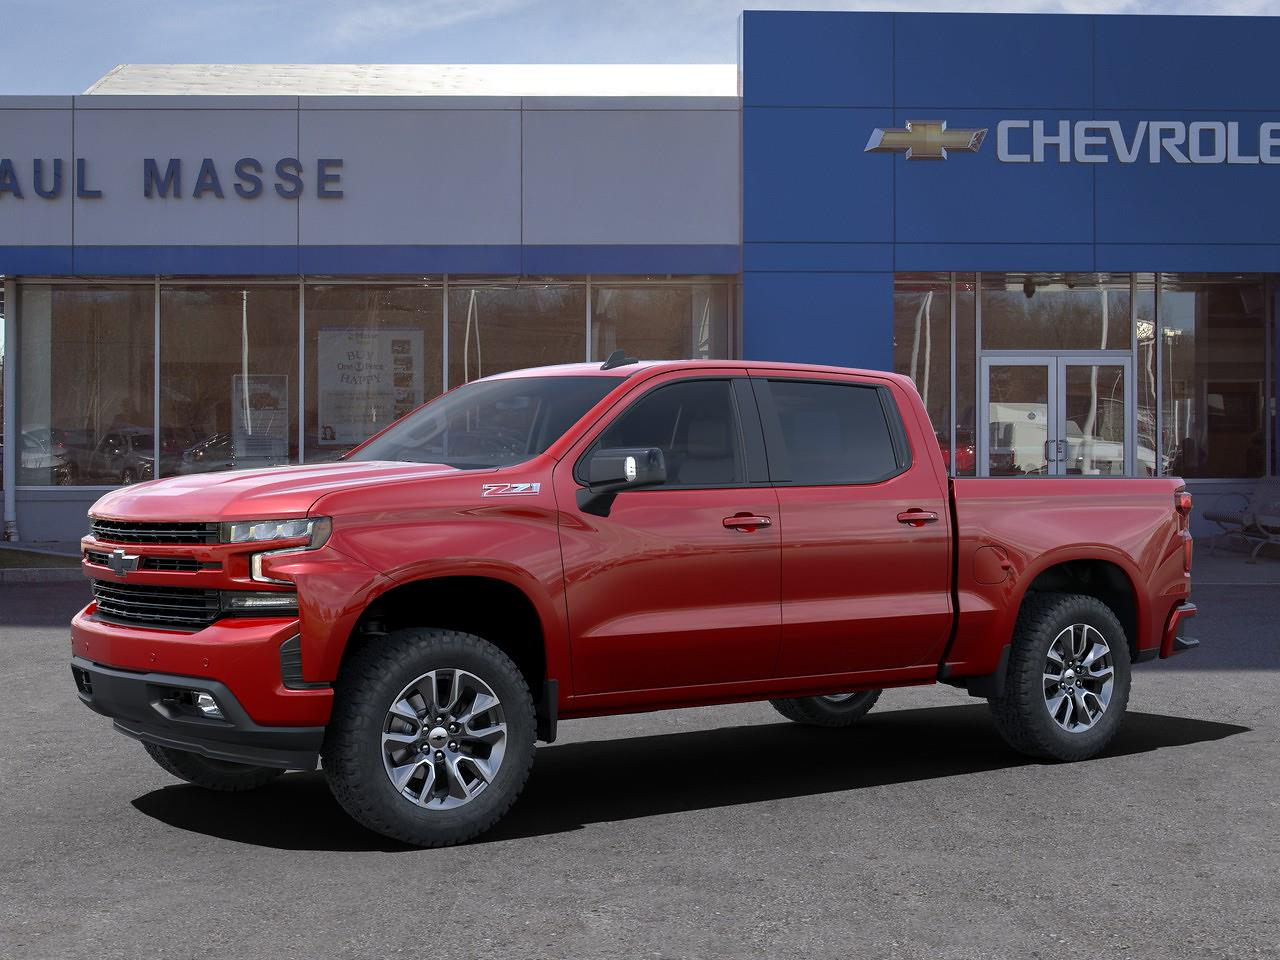 2021 Chevrolet Silverado 1500 Crew Cab 4x4, Pickup #CK1400 - photo 3